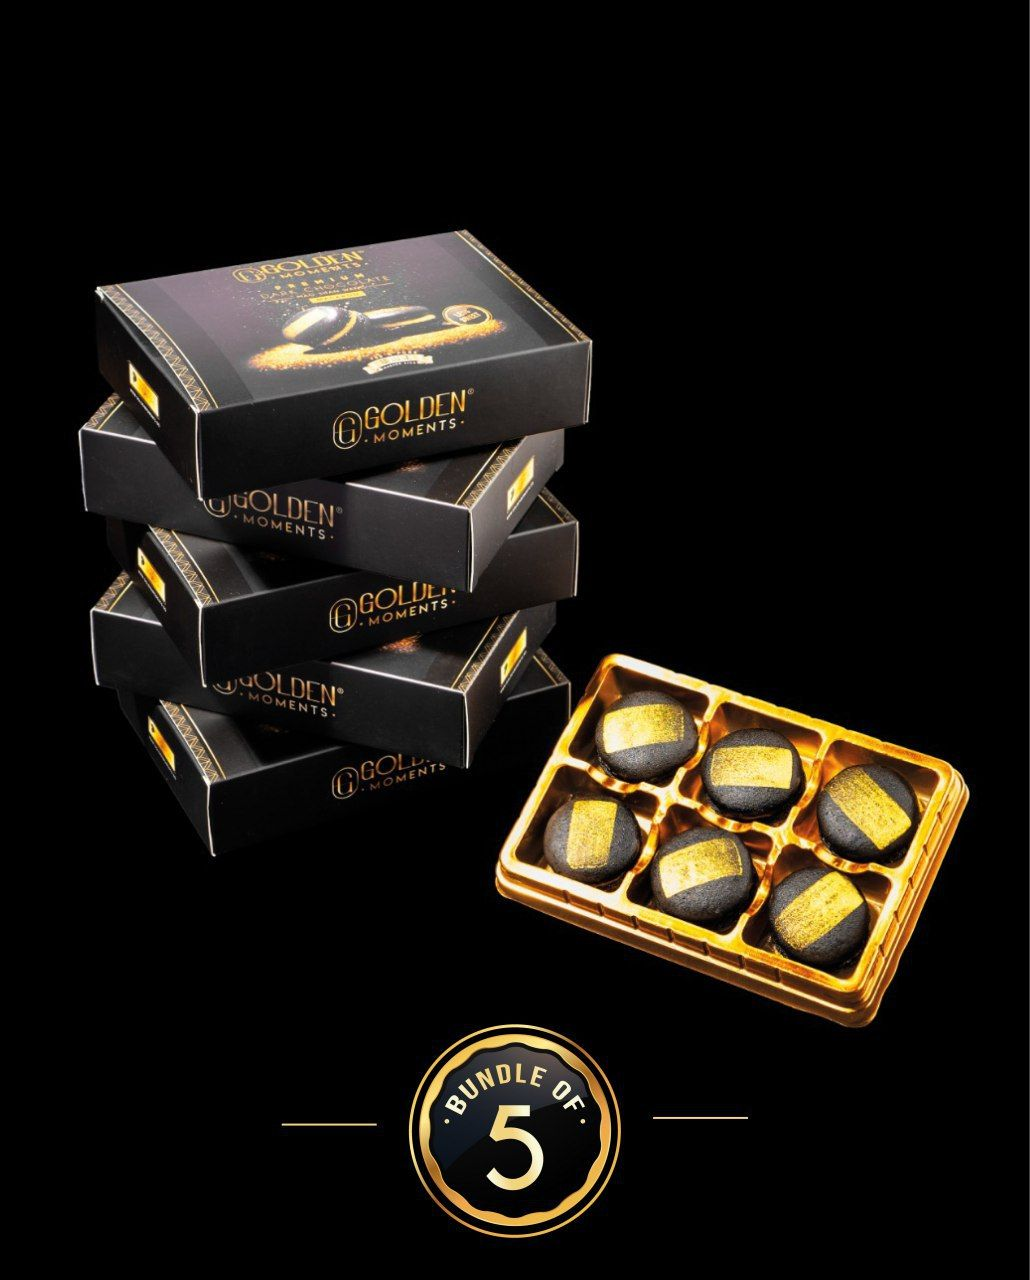 Premium Dark Chocolate Mao Shan Wang Macaron - Bundle of 5